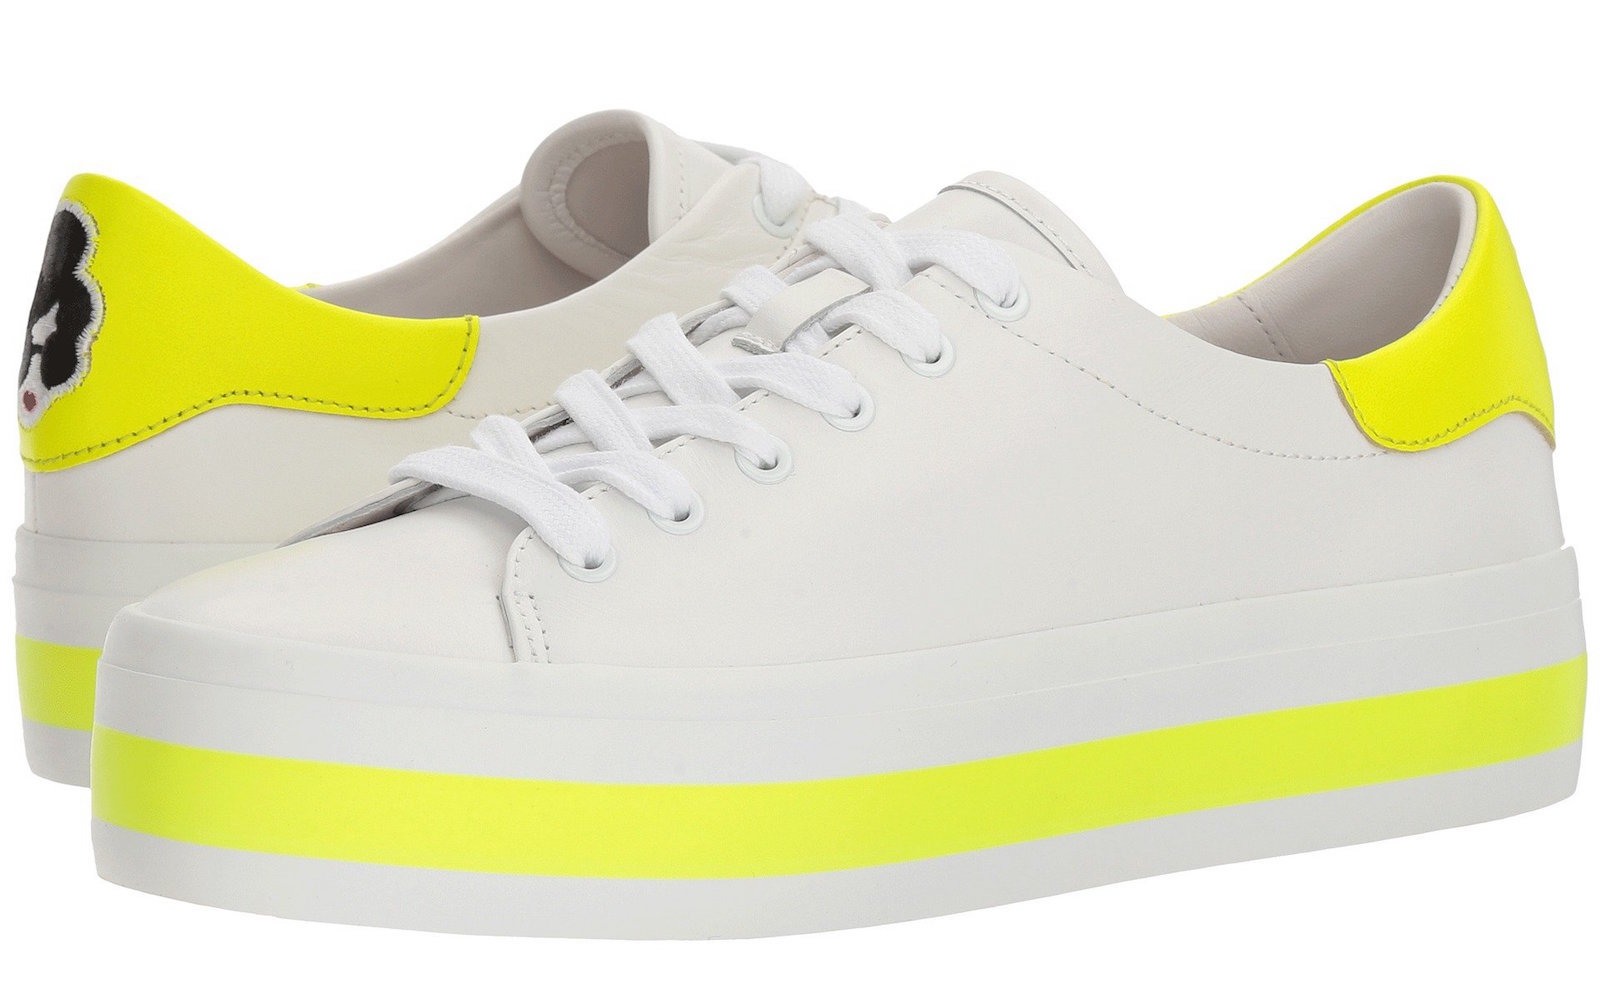 Alice + Olivia yellow sneaker